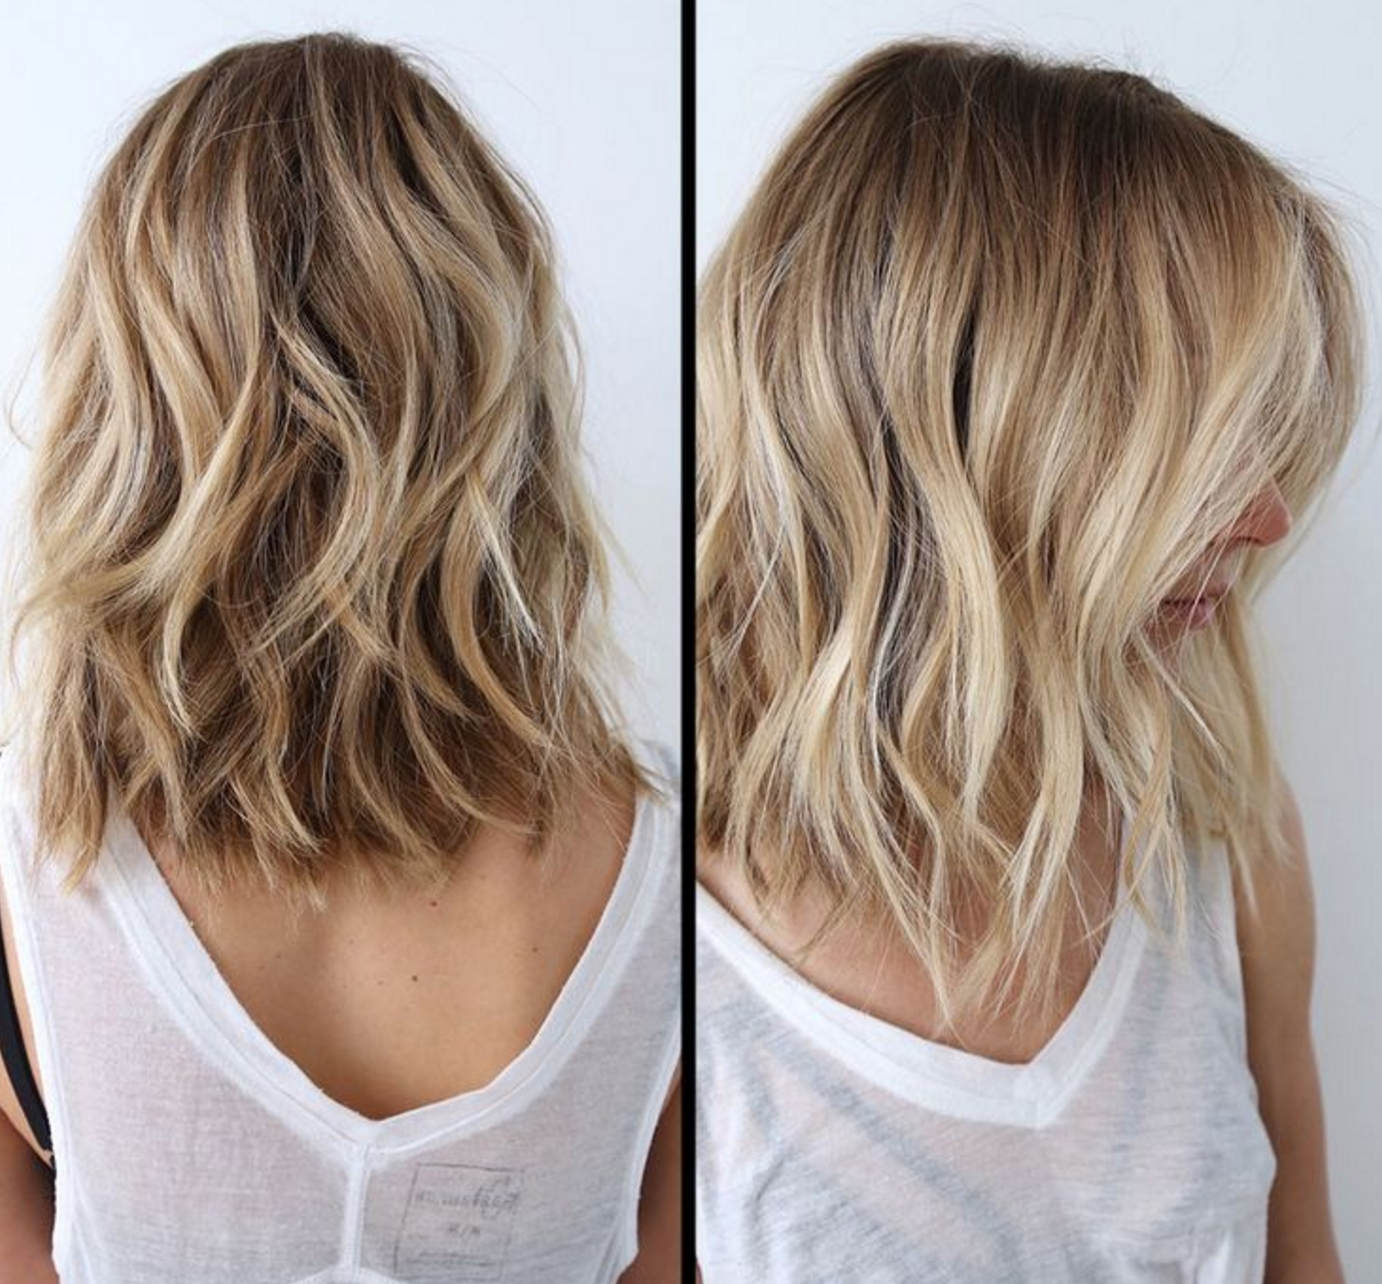 Haircut Ideas Regarding Well Known Long Bob Blonde Hairstyles With Babylights (View 3 of 20)